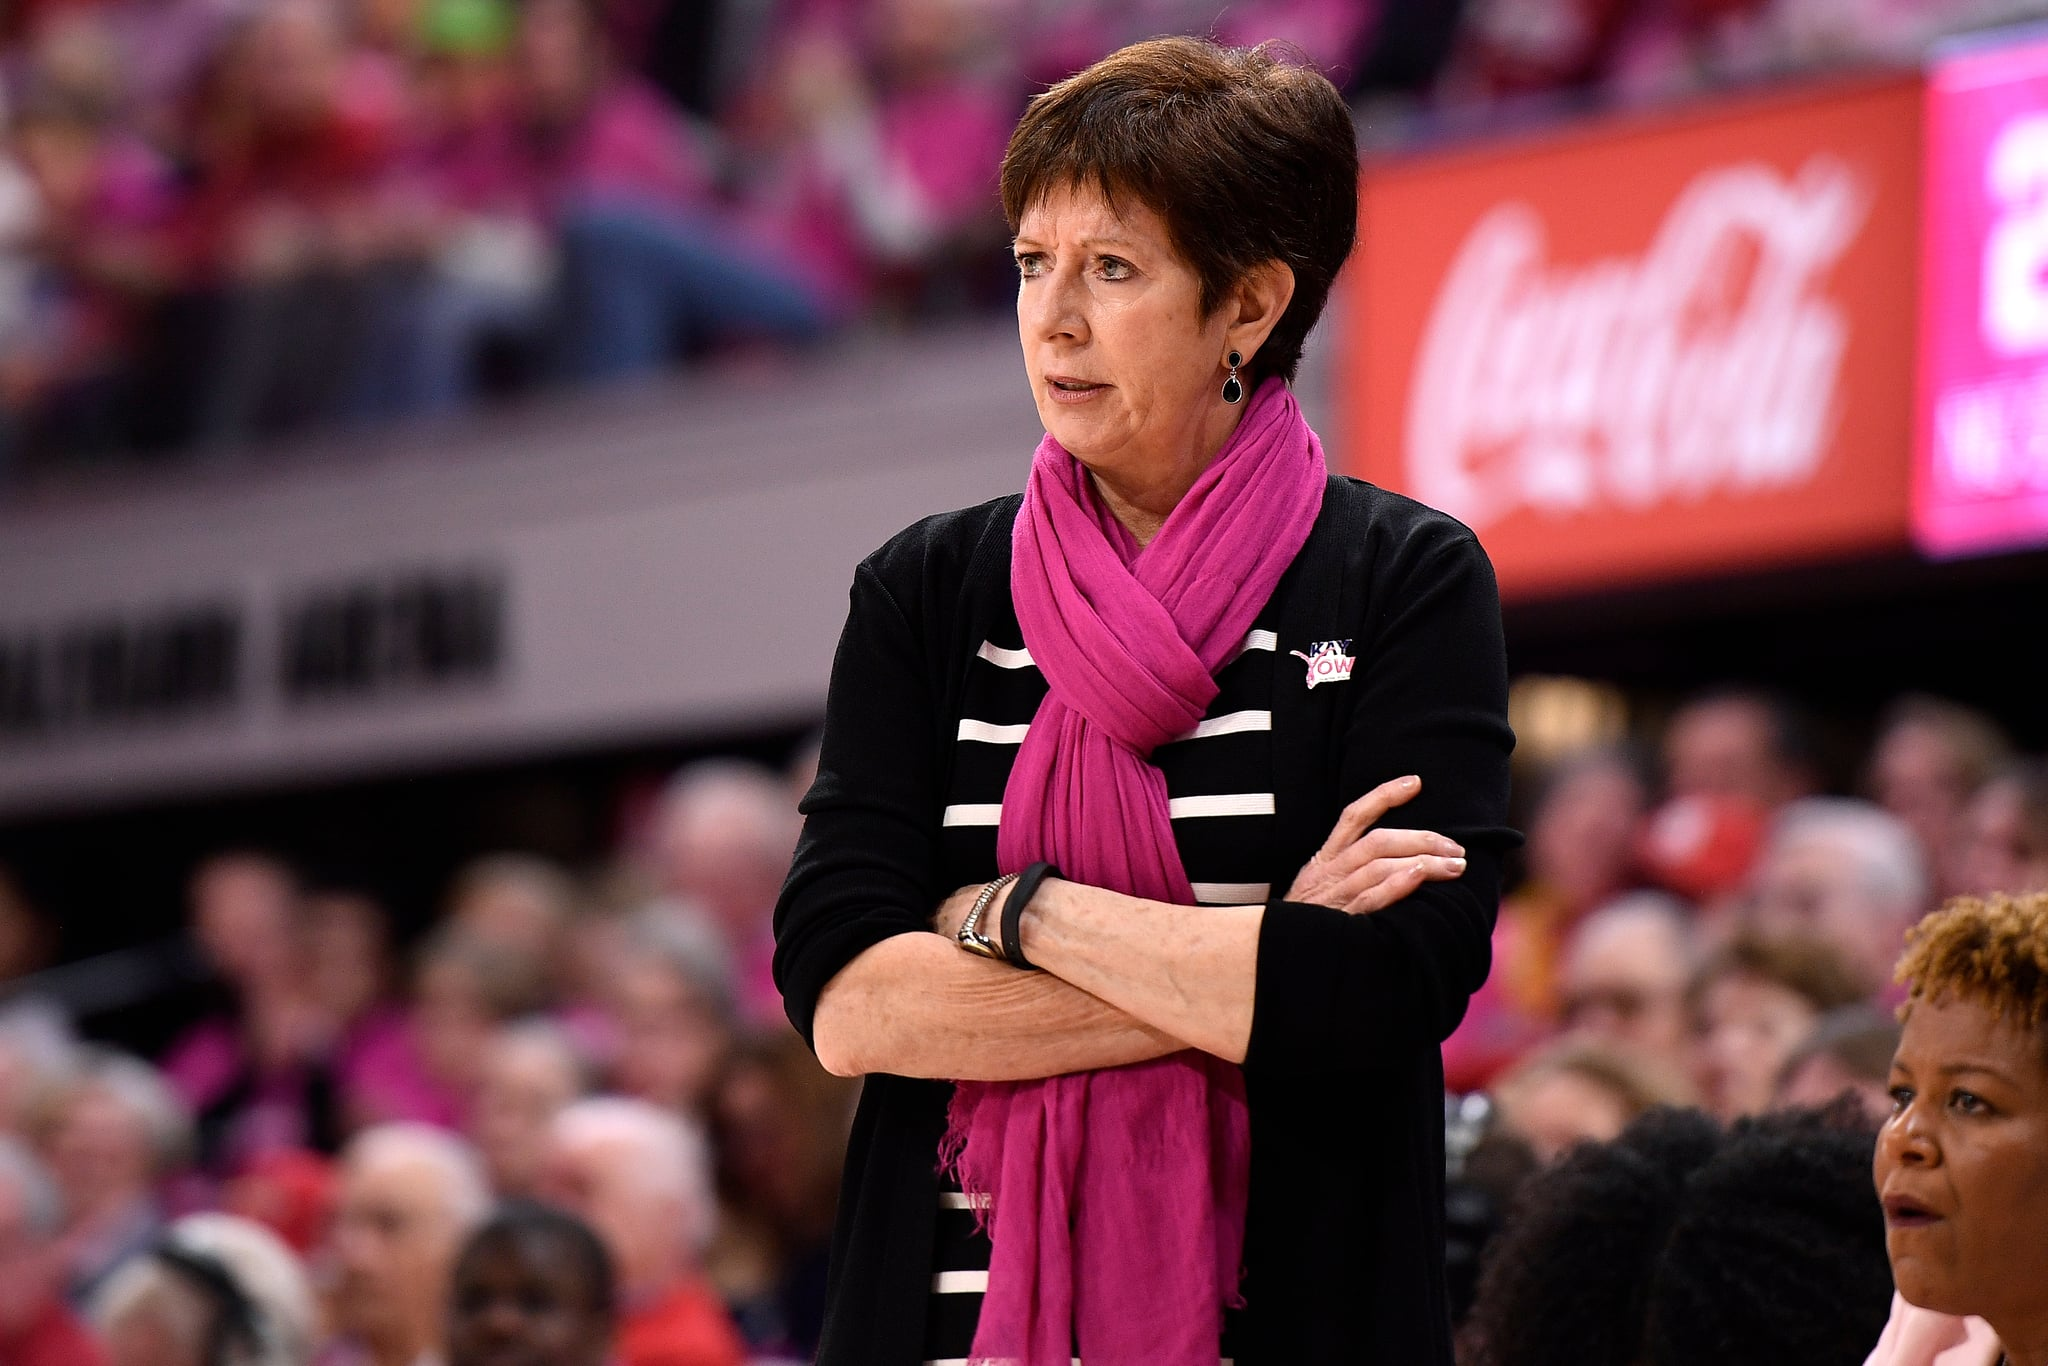 RALEIGH, NC - FEBRUARY 18: Head coach Muffet McGraw of the Notre Dame Fighting Irish looks on during their game against the North Carolina State Wolfpack at Reynolds Coliseum on February 18, 2019 in Raleigh, North Carolina. Notre Dame won 95-72. (Photo by Lance King/Getty Images)